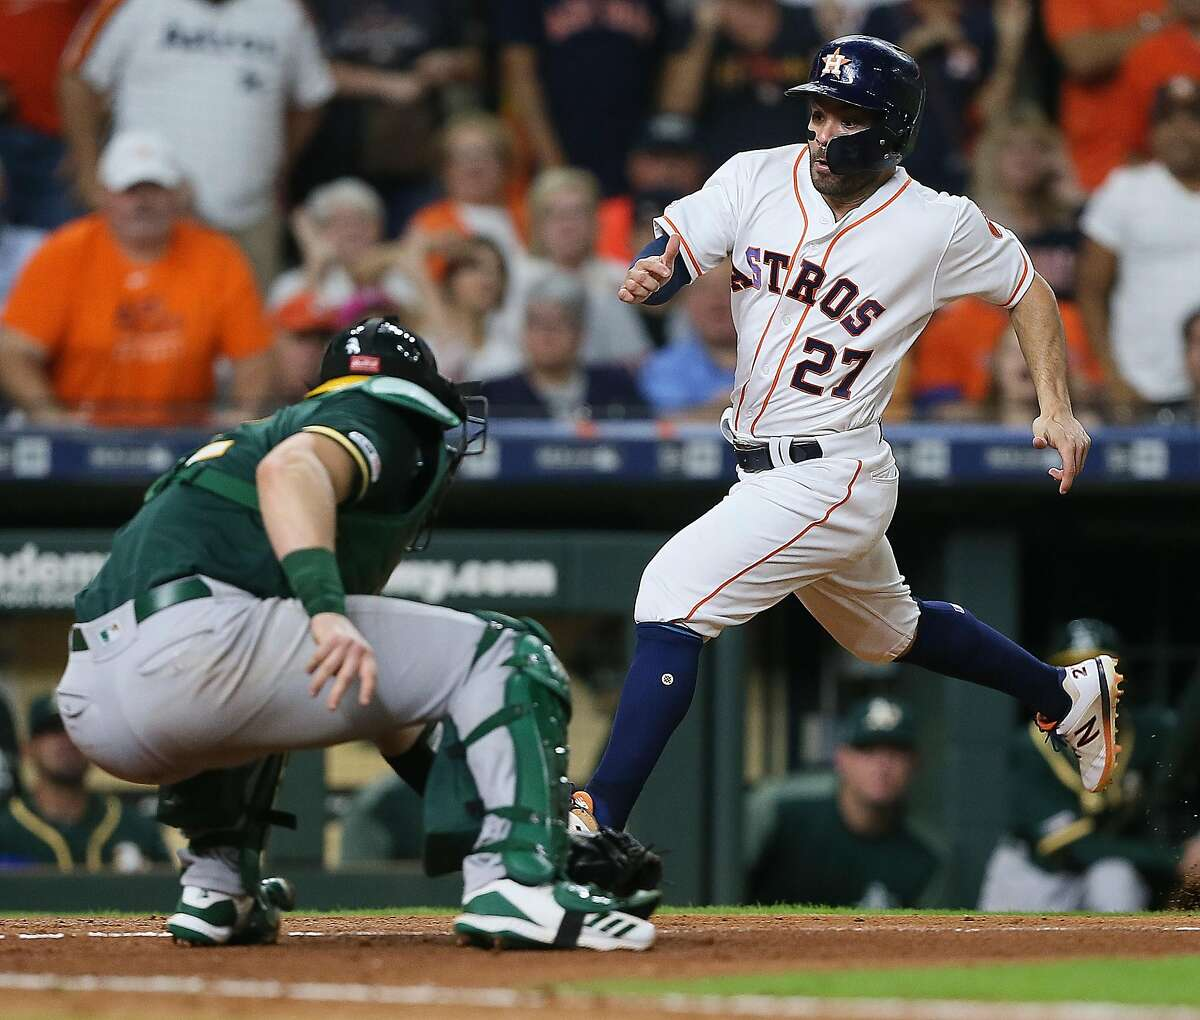 HOUSTON, TEXAS - SEPTEMBER 11: Jose Altuve #27 of the Houston Astros is tagged out by Sean Murphy #12 of the Oakland Athletics in the fifth inning at Minute Maid Park on September 11, 2019 in Houston, Texas. (Photo by Bob Levey/Getty Images)